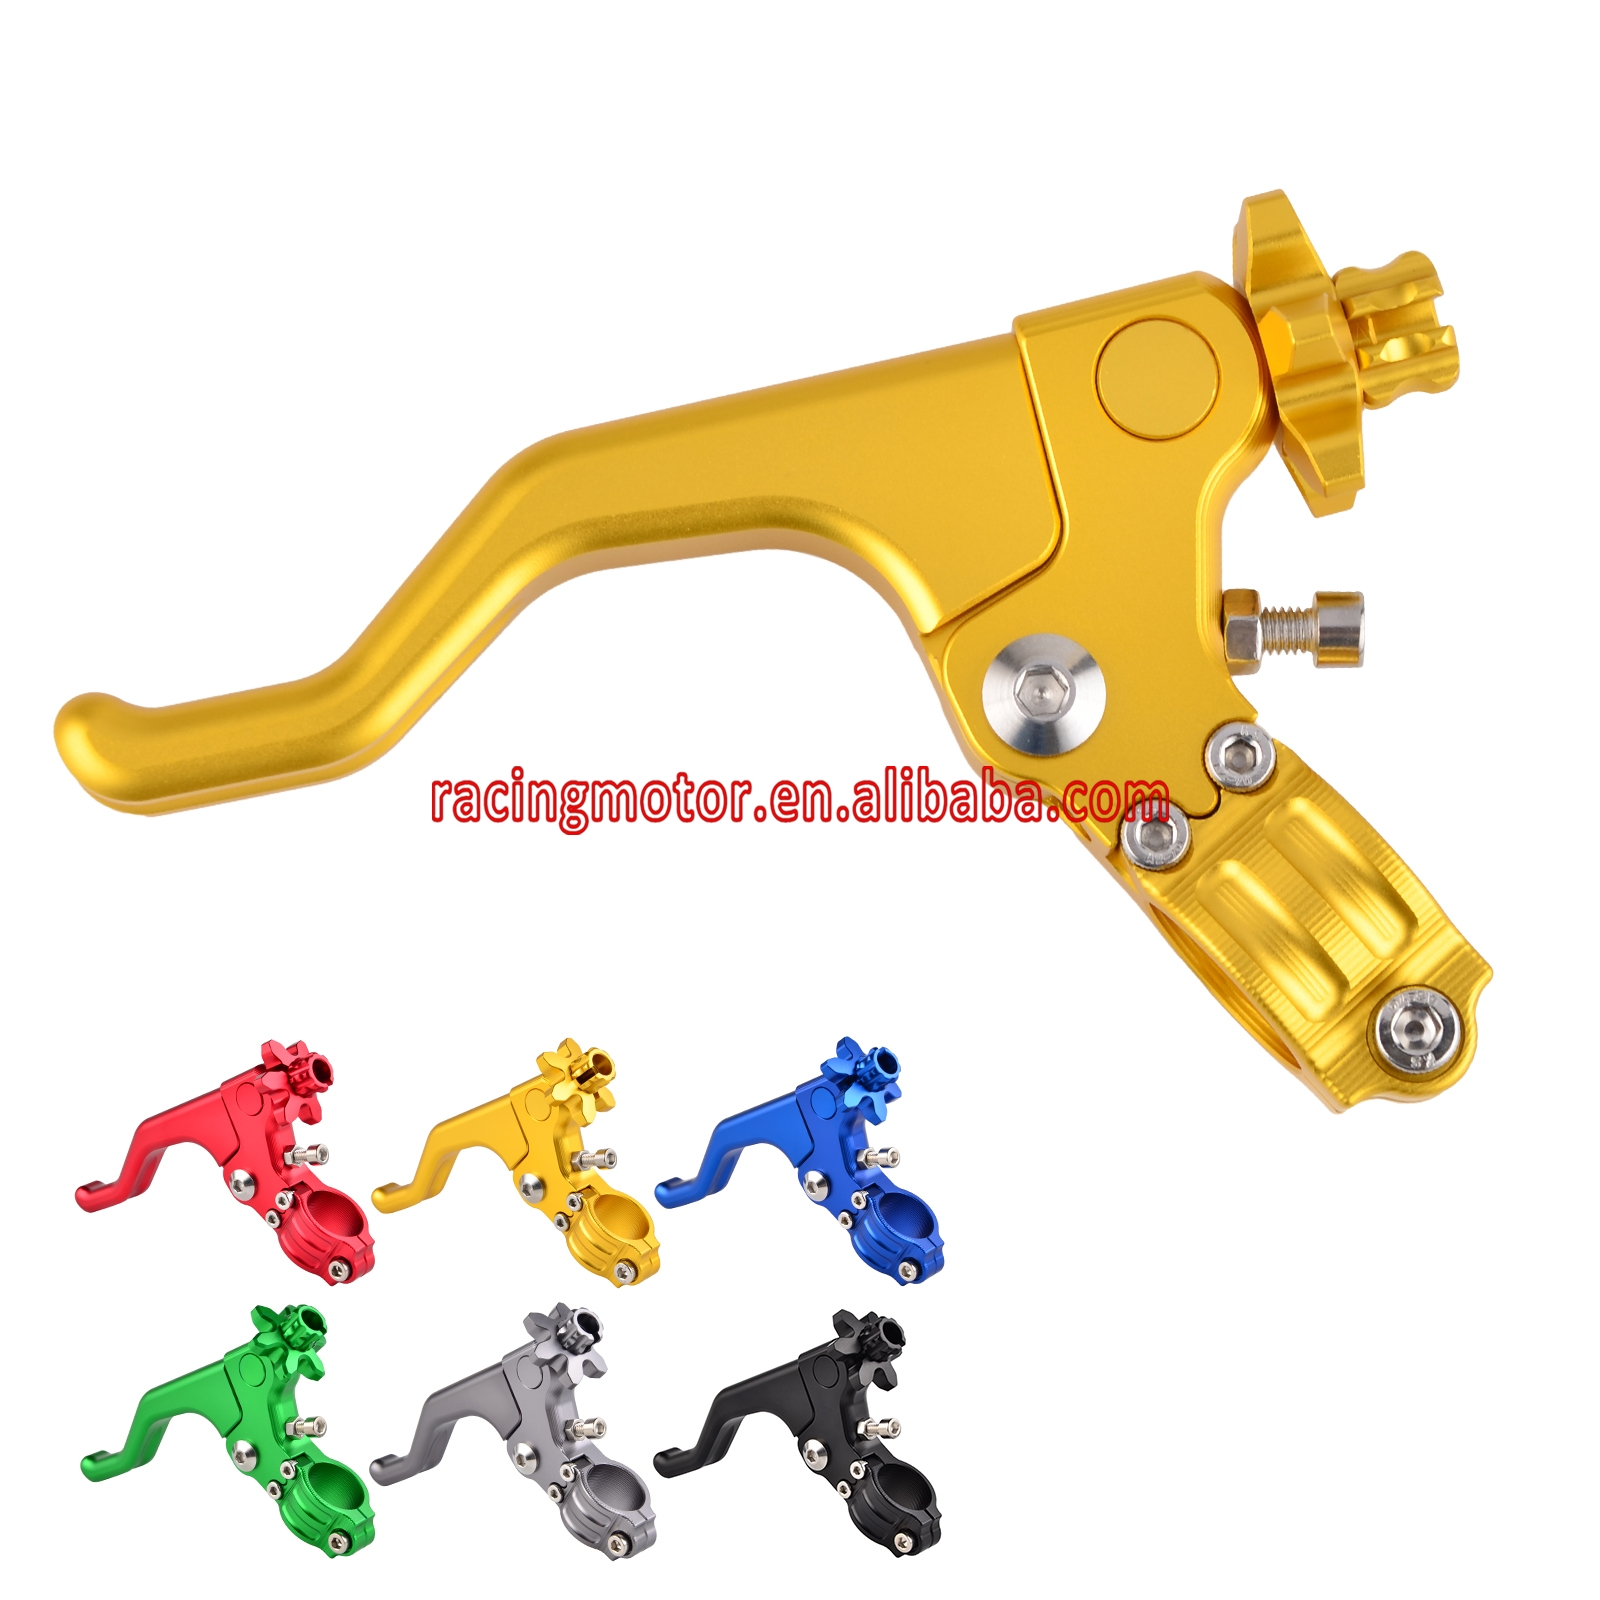 22MM 7/8 CNC Short Stunt Clutch Lever Assembly For Yamaha YZF-R3 YZFR3 YZFR6 YZF-R25 YZFR25 MT-03 MT-25 FZ-09 MT-09 motocross mx dirt bike 22mm 7 8 handlebar cnc short stunt clutch lever perch assembly 6 color options